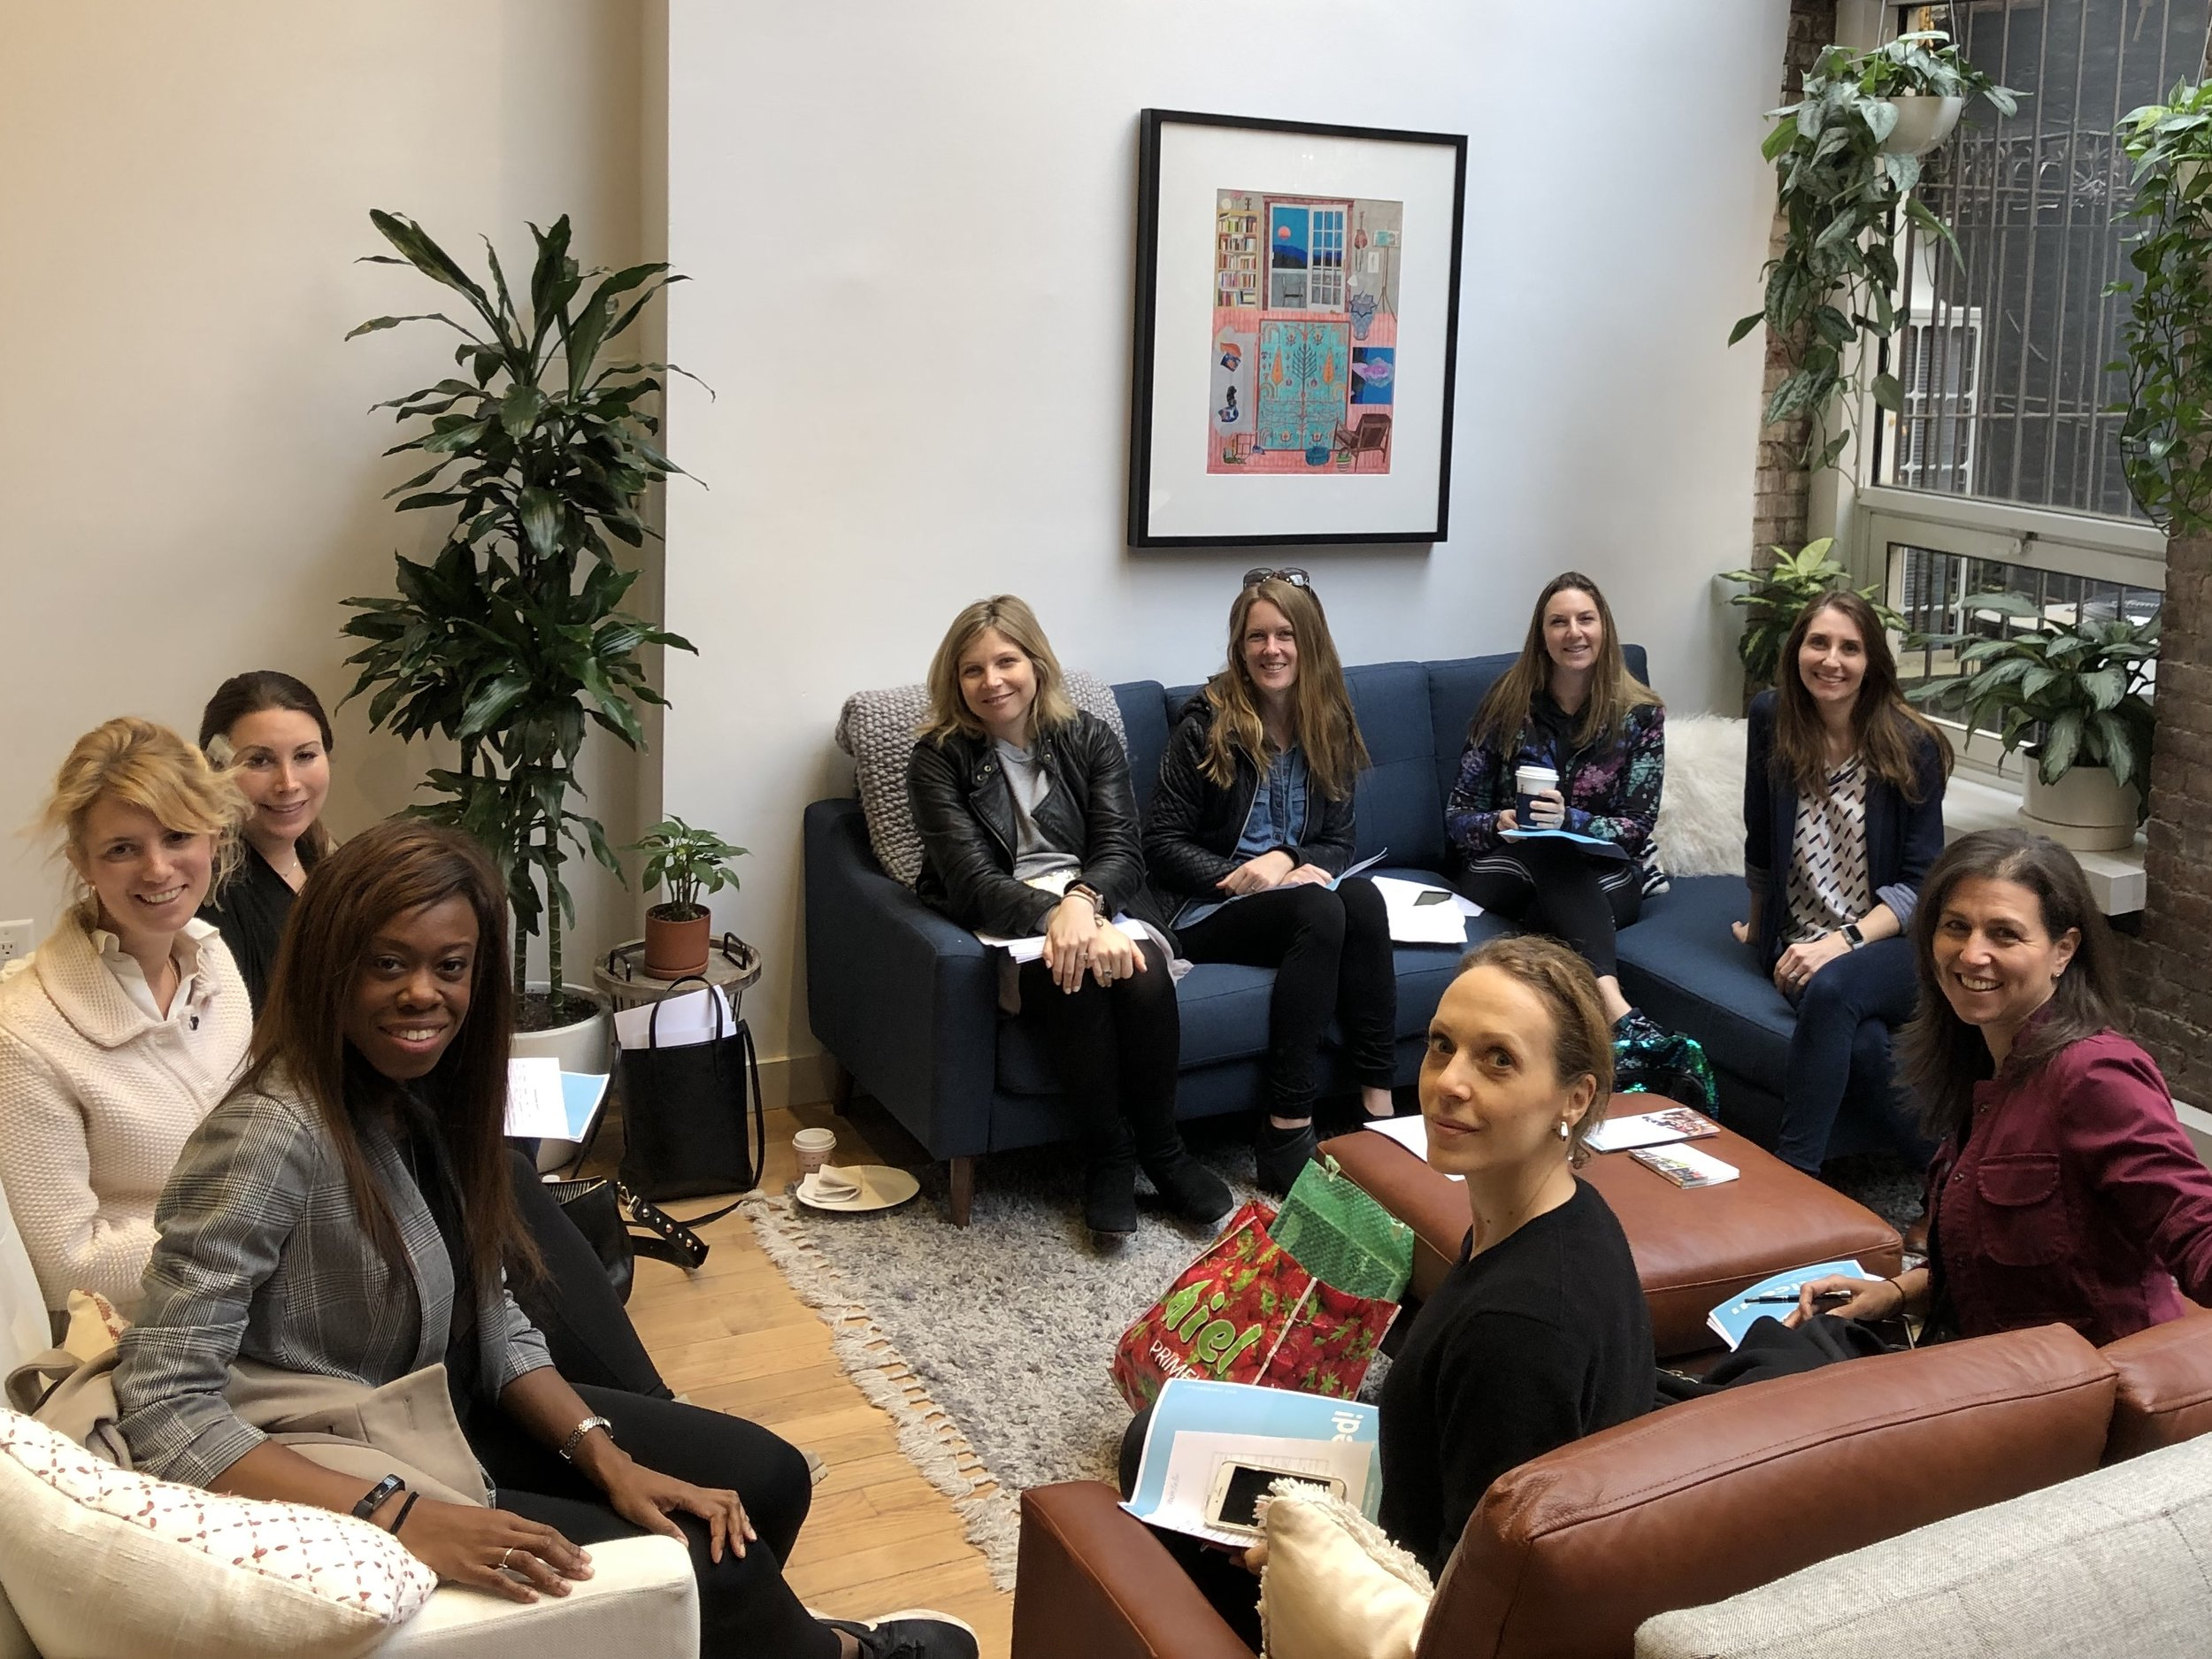 Mompreneurs of NYC - This is a group for moms of NYC who have started their own businesses to connect with one another, share ideas, ask for advice and recommendations, and support one another.